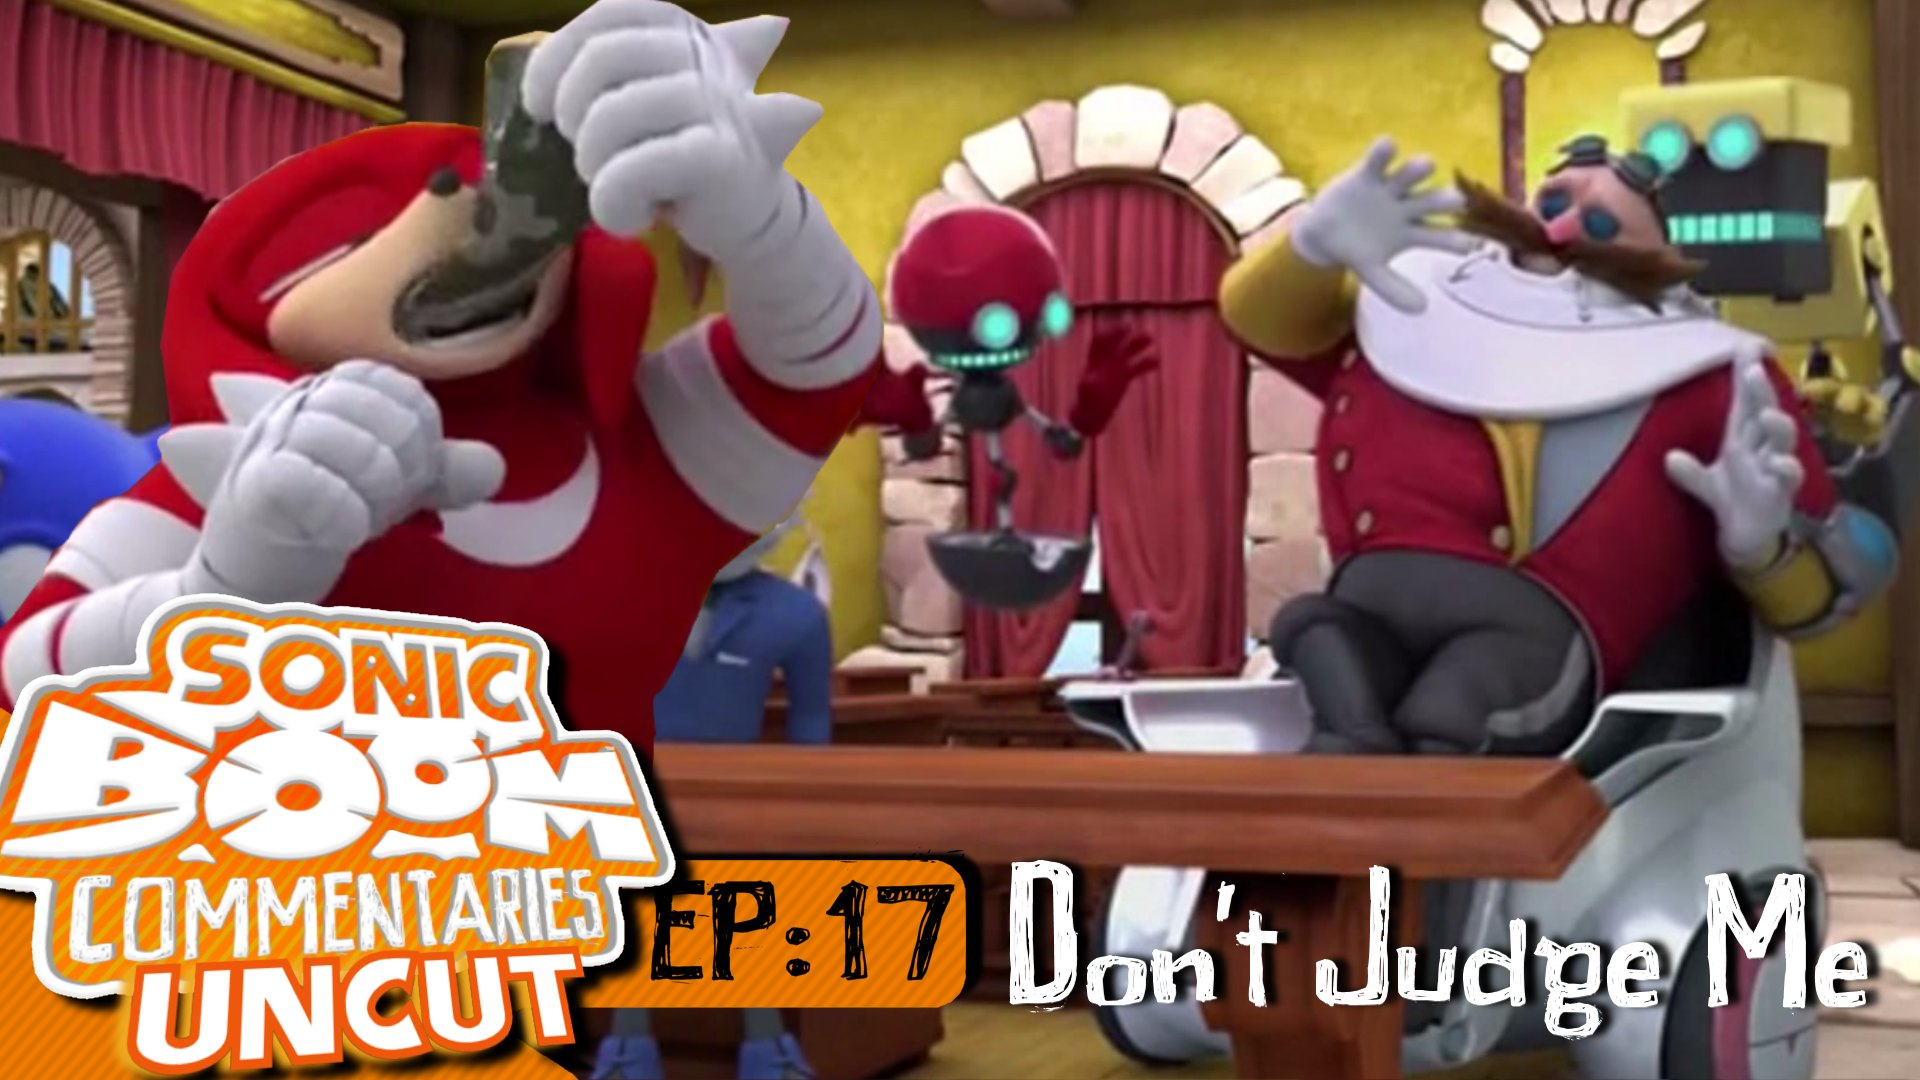 Boom Commentaries Uncut: Episode 17 Don't Judge Me